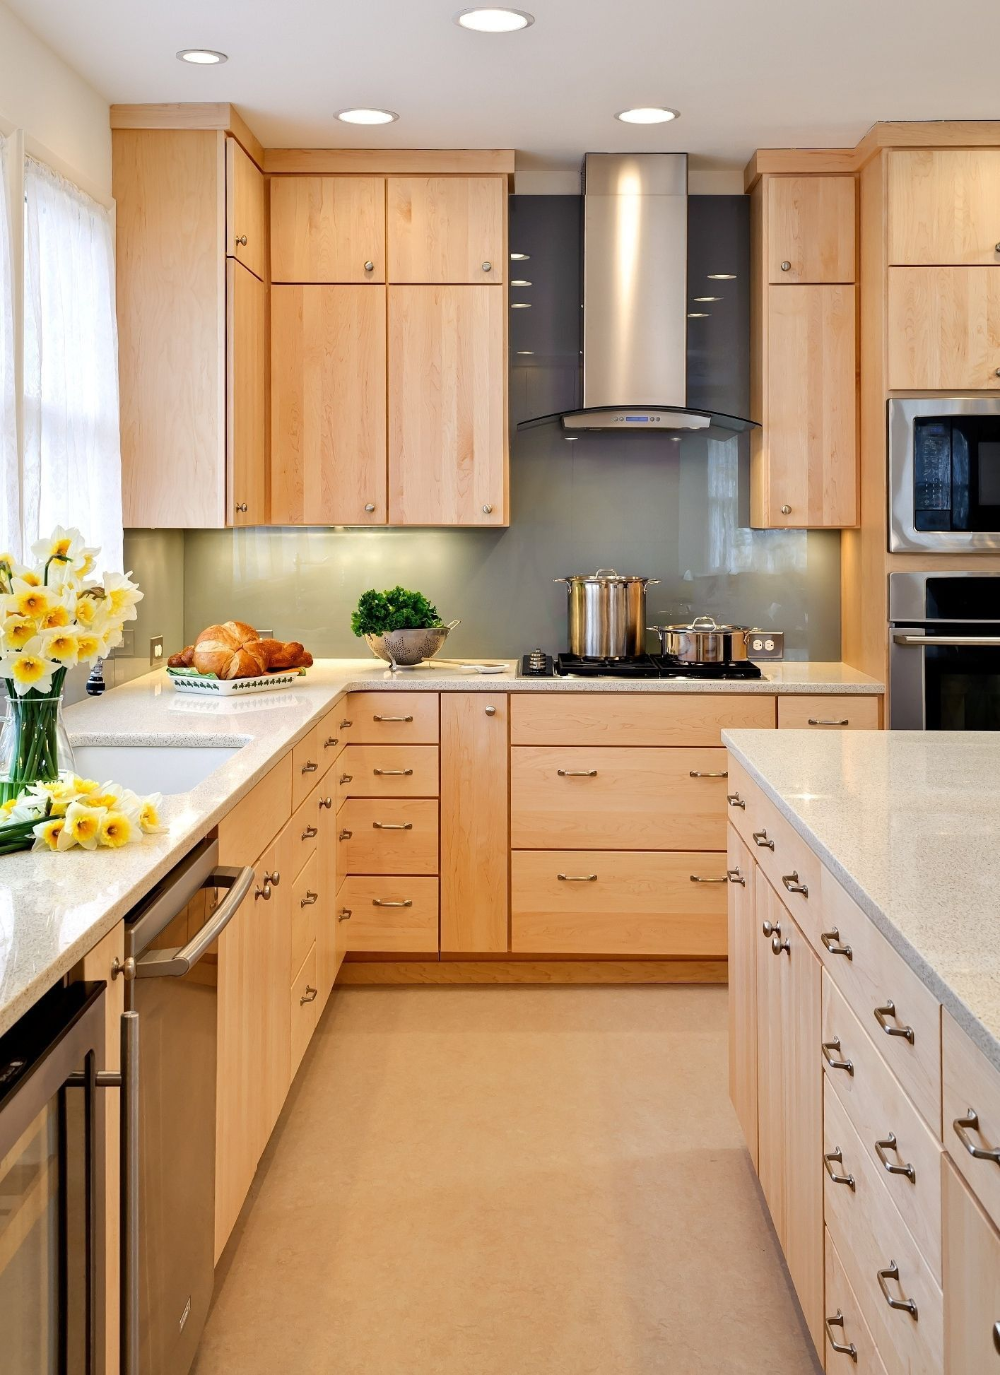 Best Refacing Kitchen Cabinets With Modern Flat Panel Fronts 400 x 300